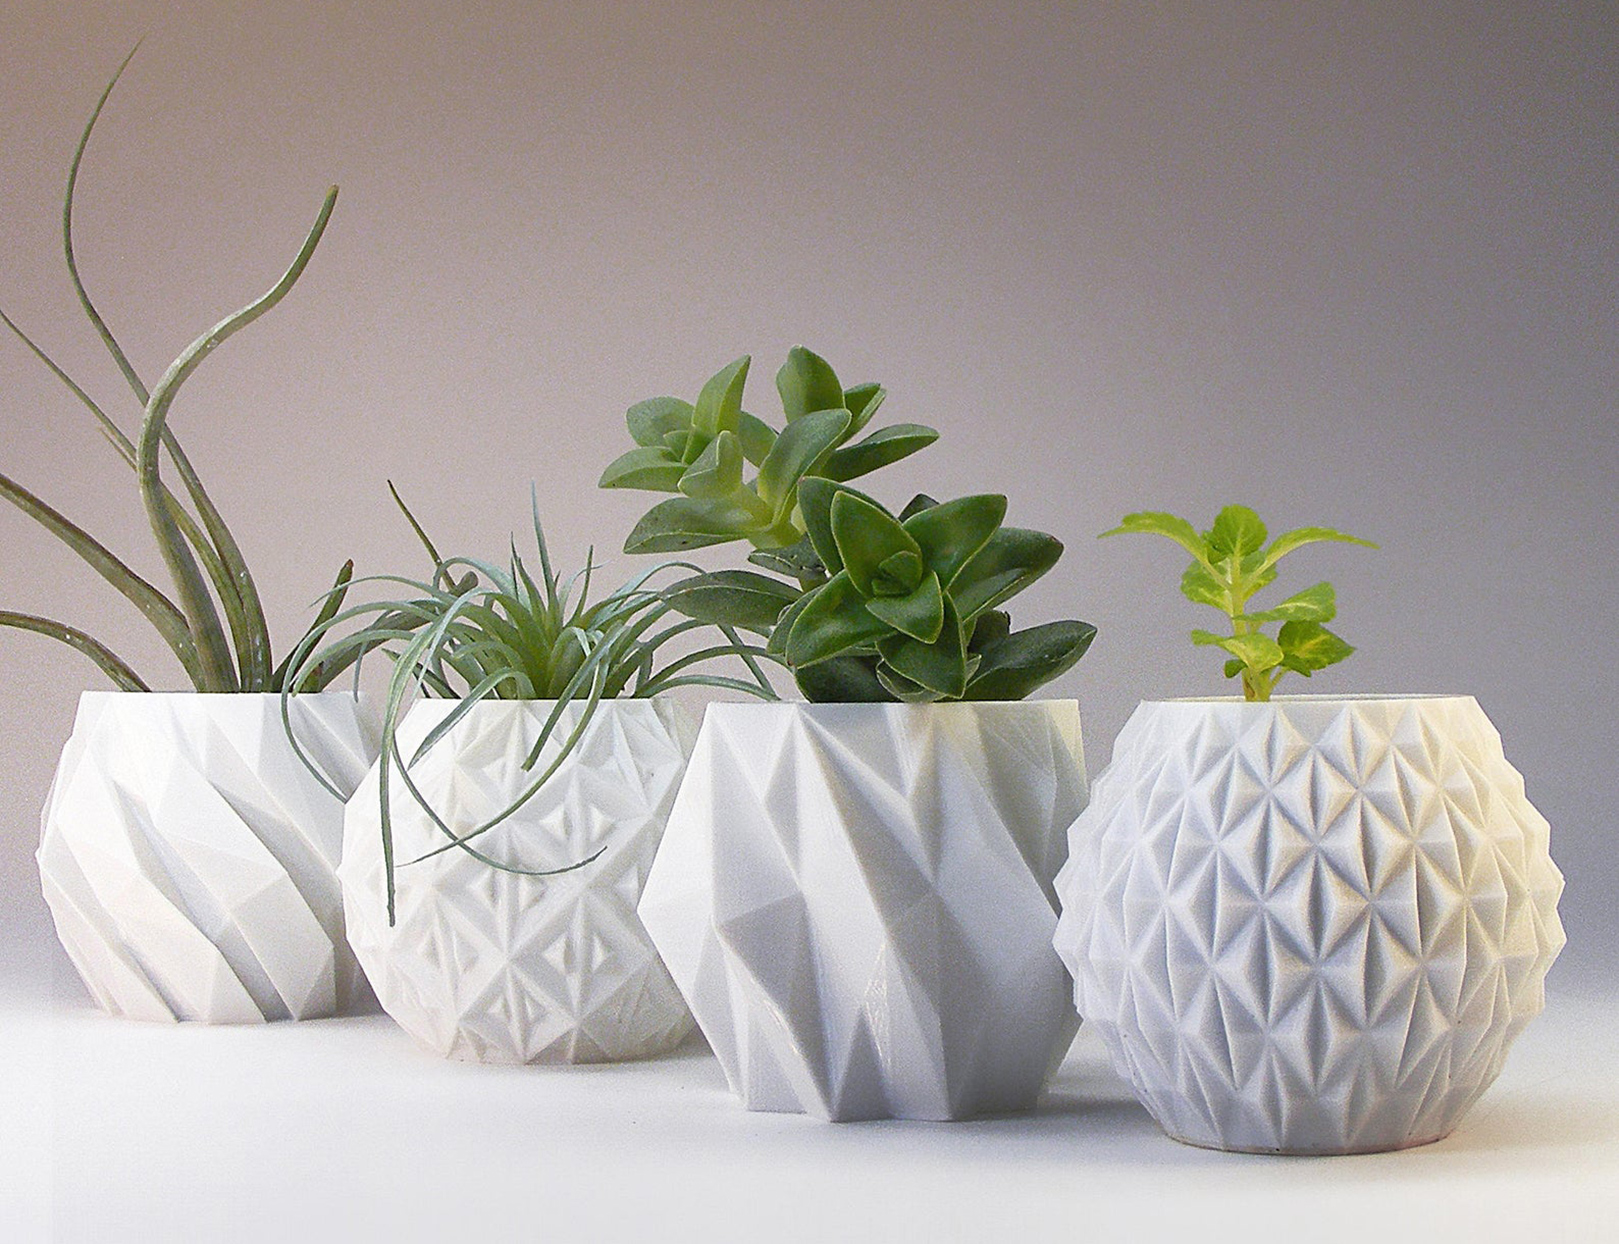 These 3D-Printed Planters Are the Cutest Way to Upgrade Your Houseplants |  Better Homes & Gardens